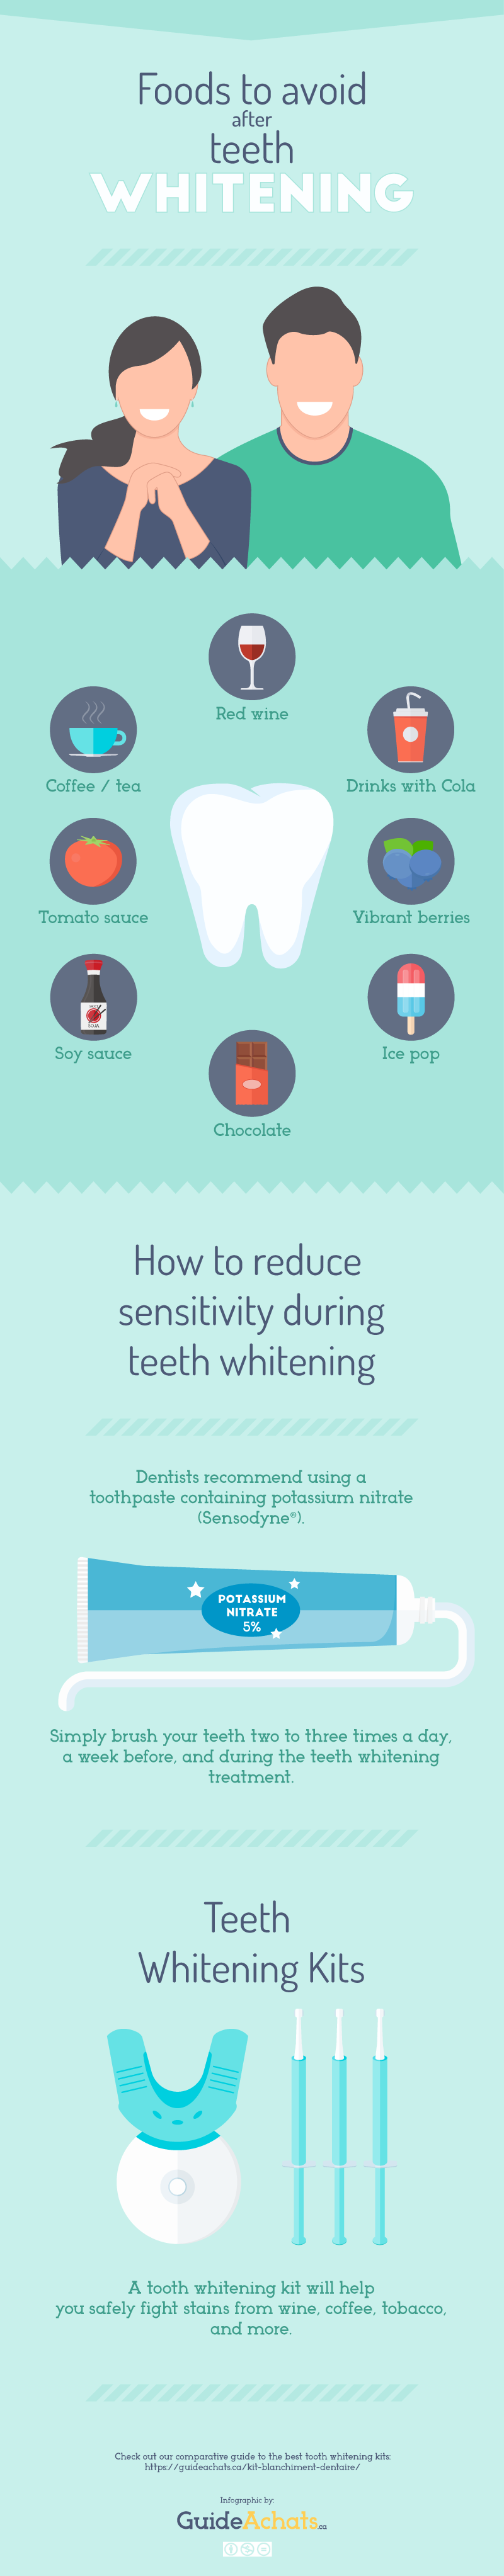 Foods to Avoid After Teeth Whitening